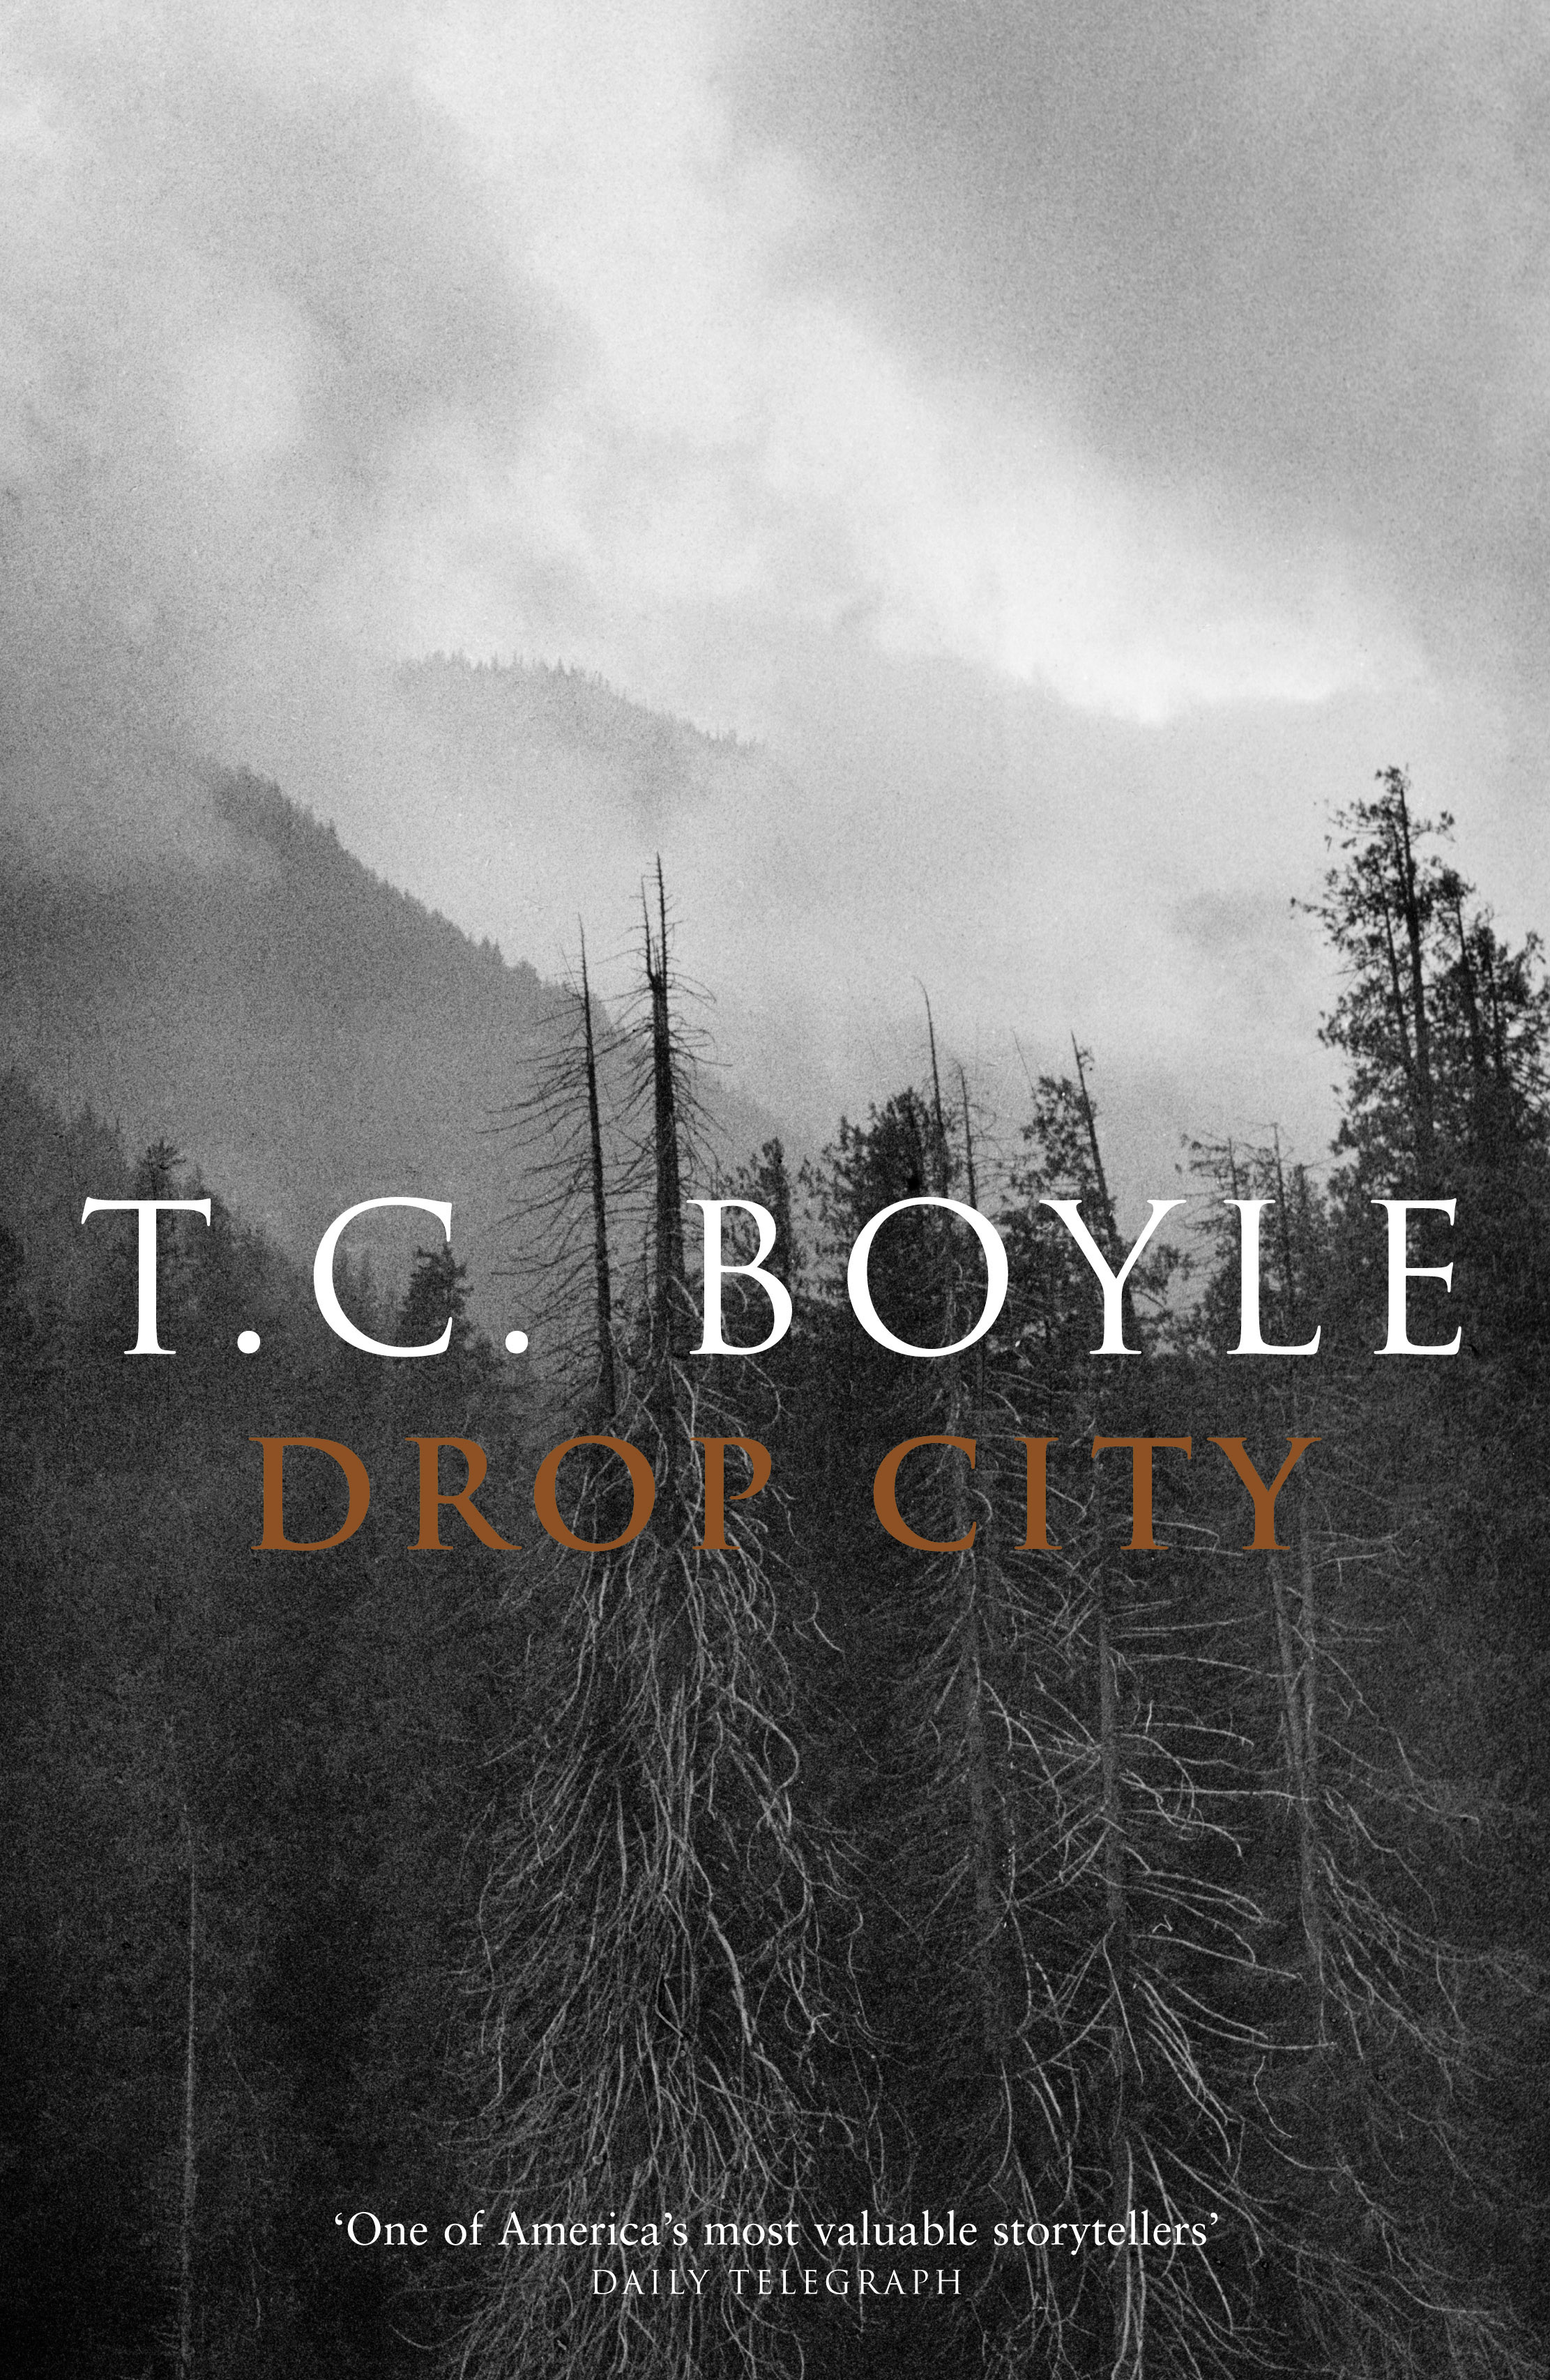 Drop City - T. Coraghessan Boyle